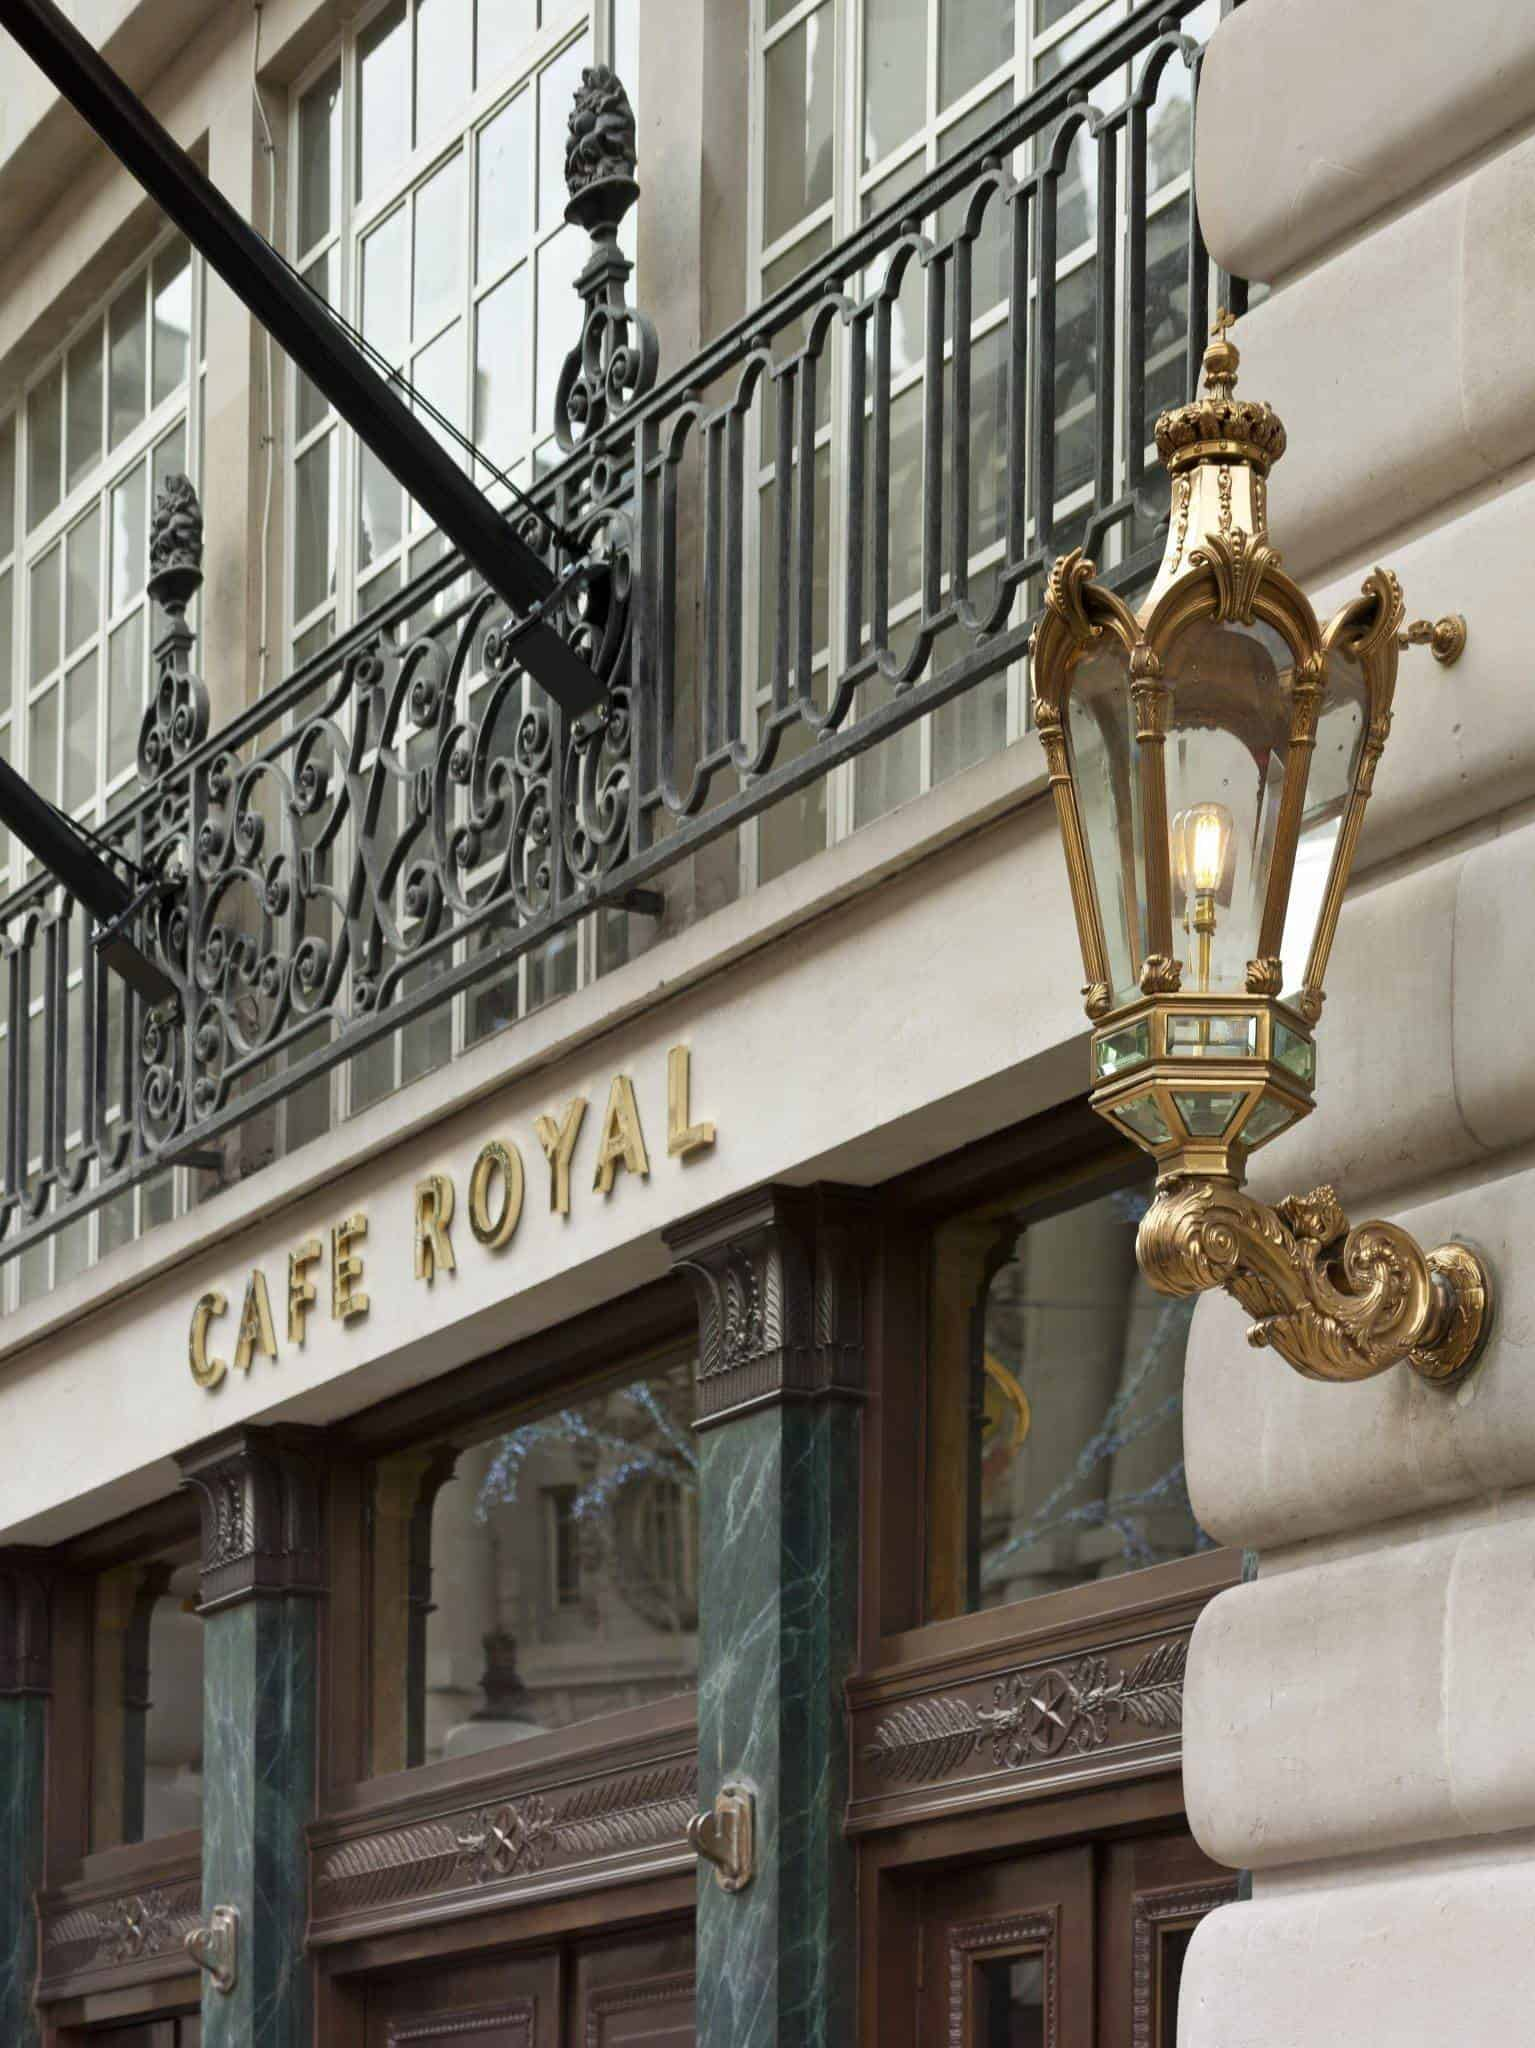 Review: Hotel Café Royal